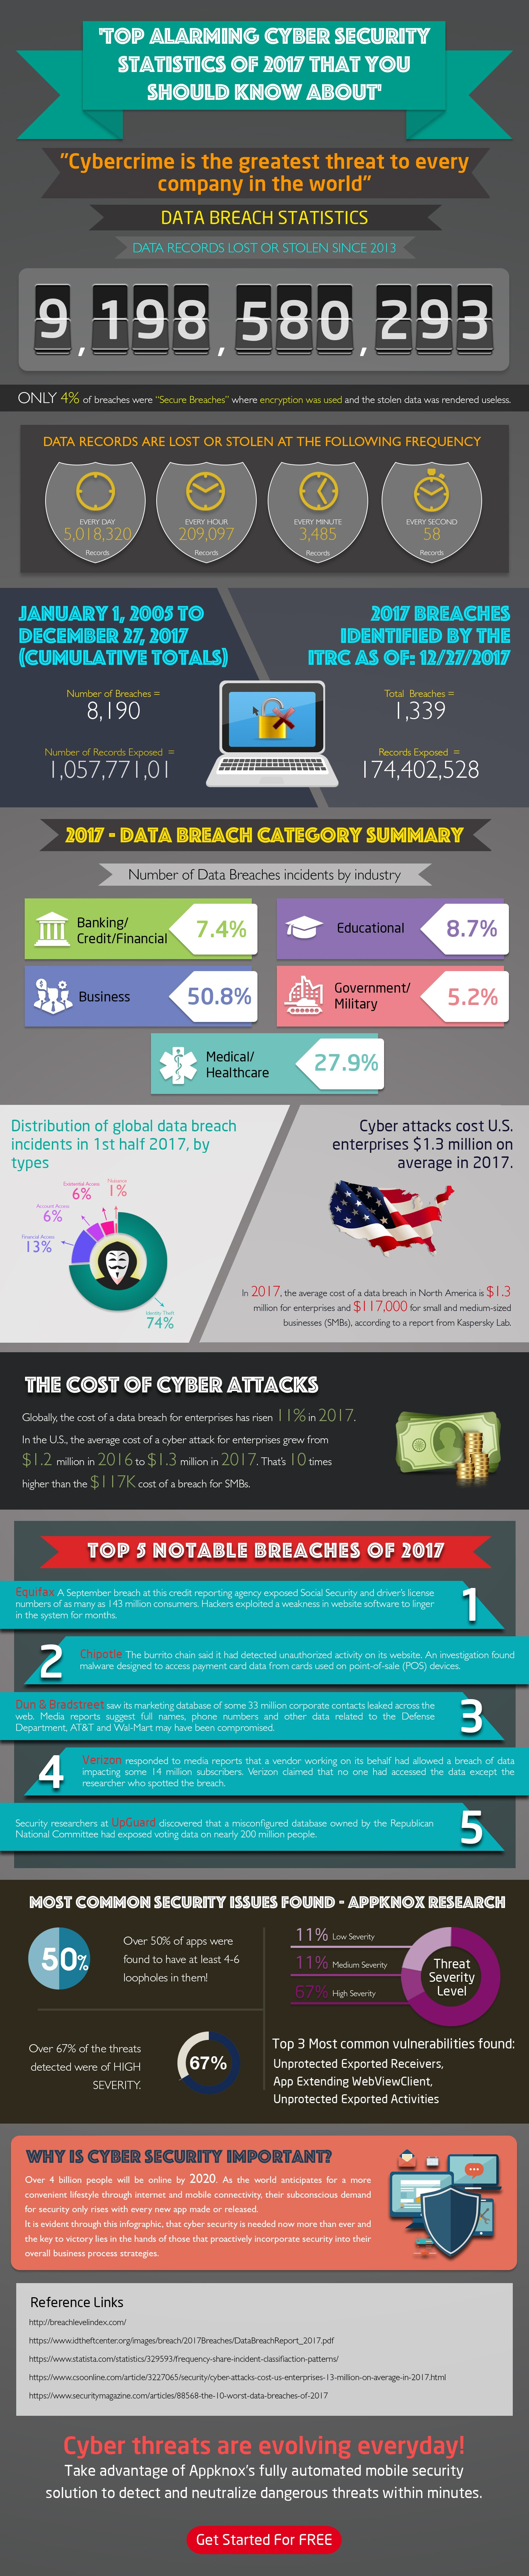 Top alarming cyber security statistics of 2017